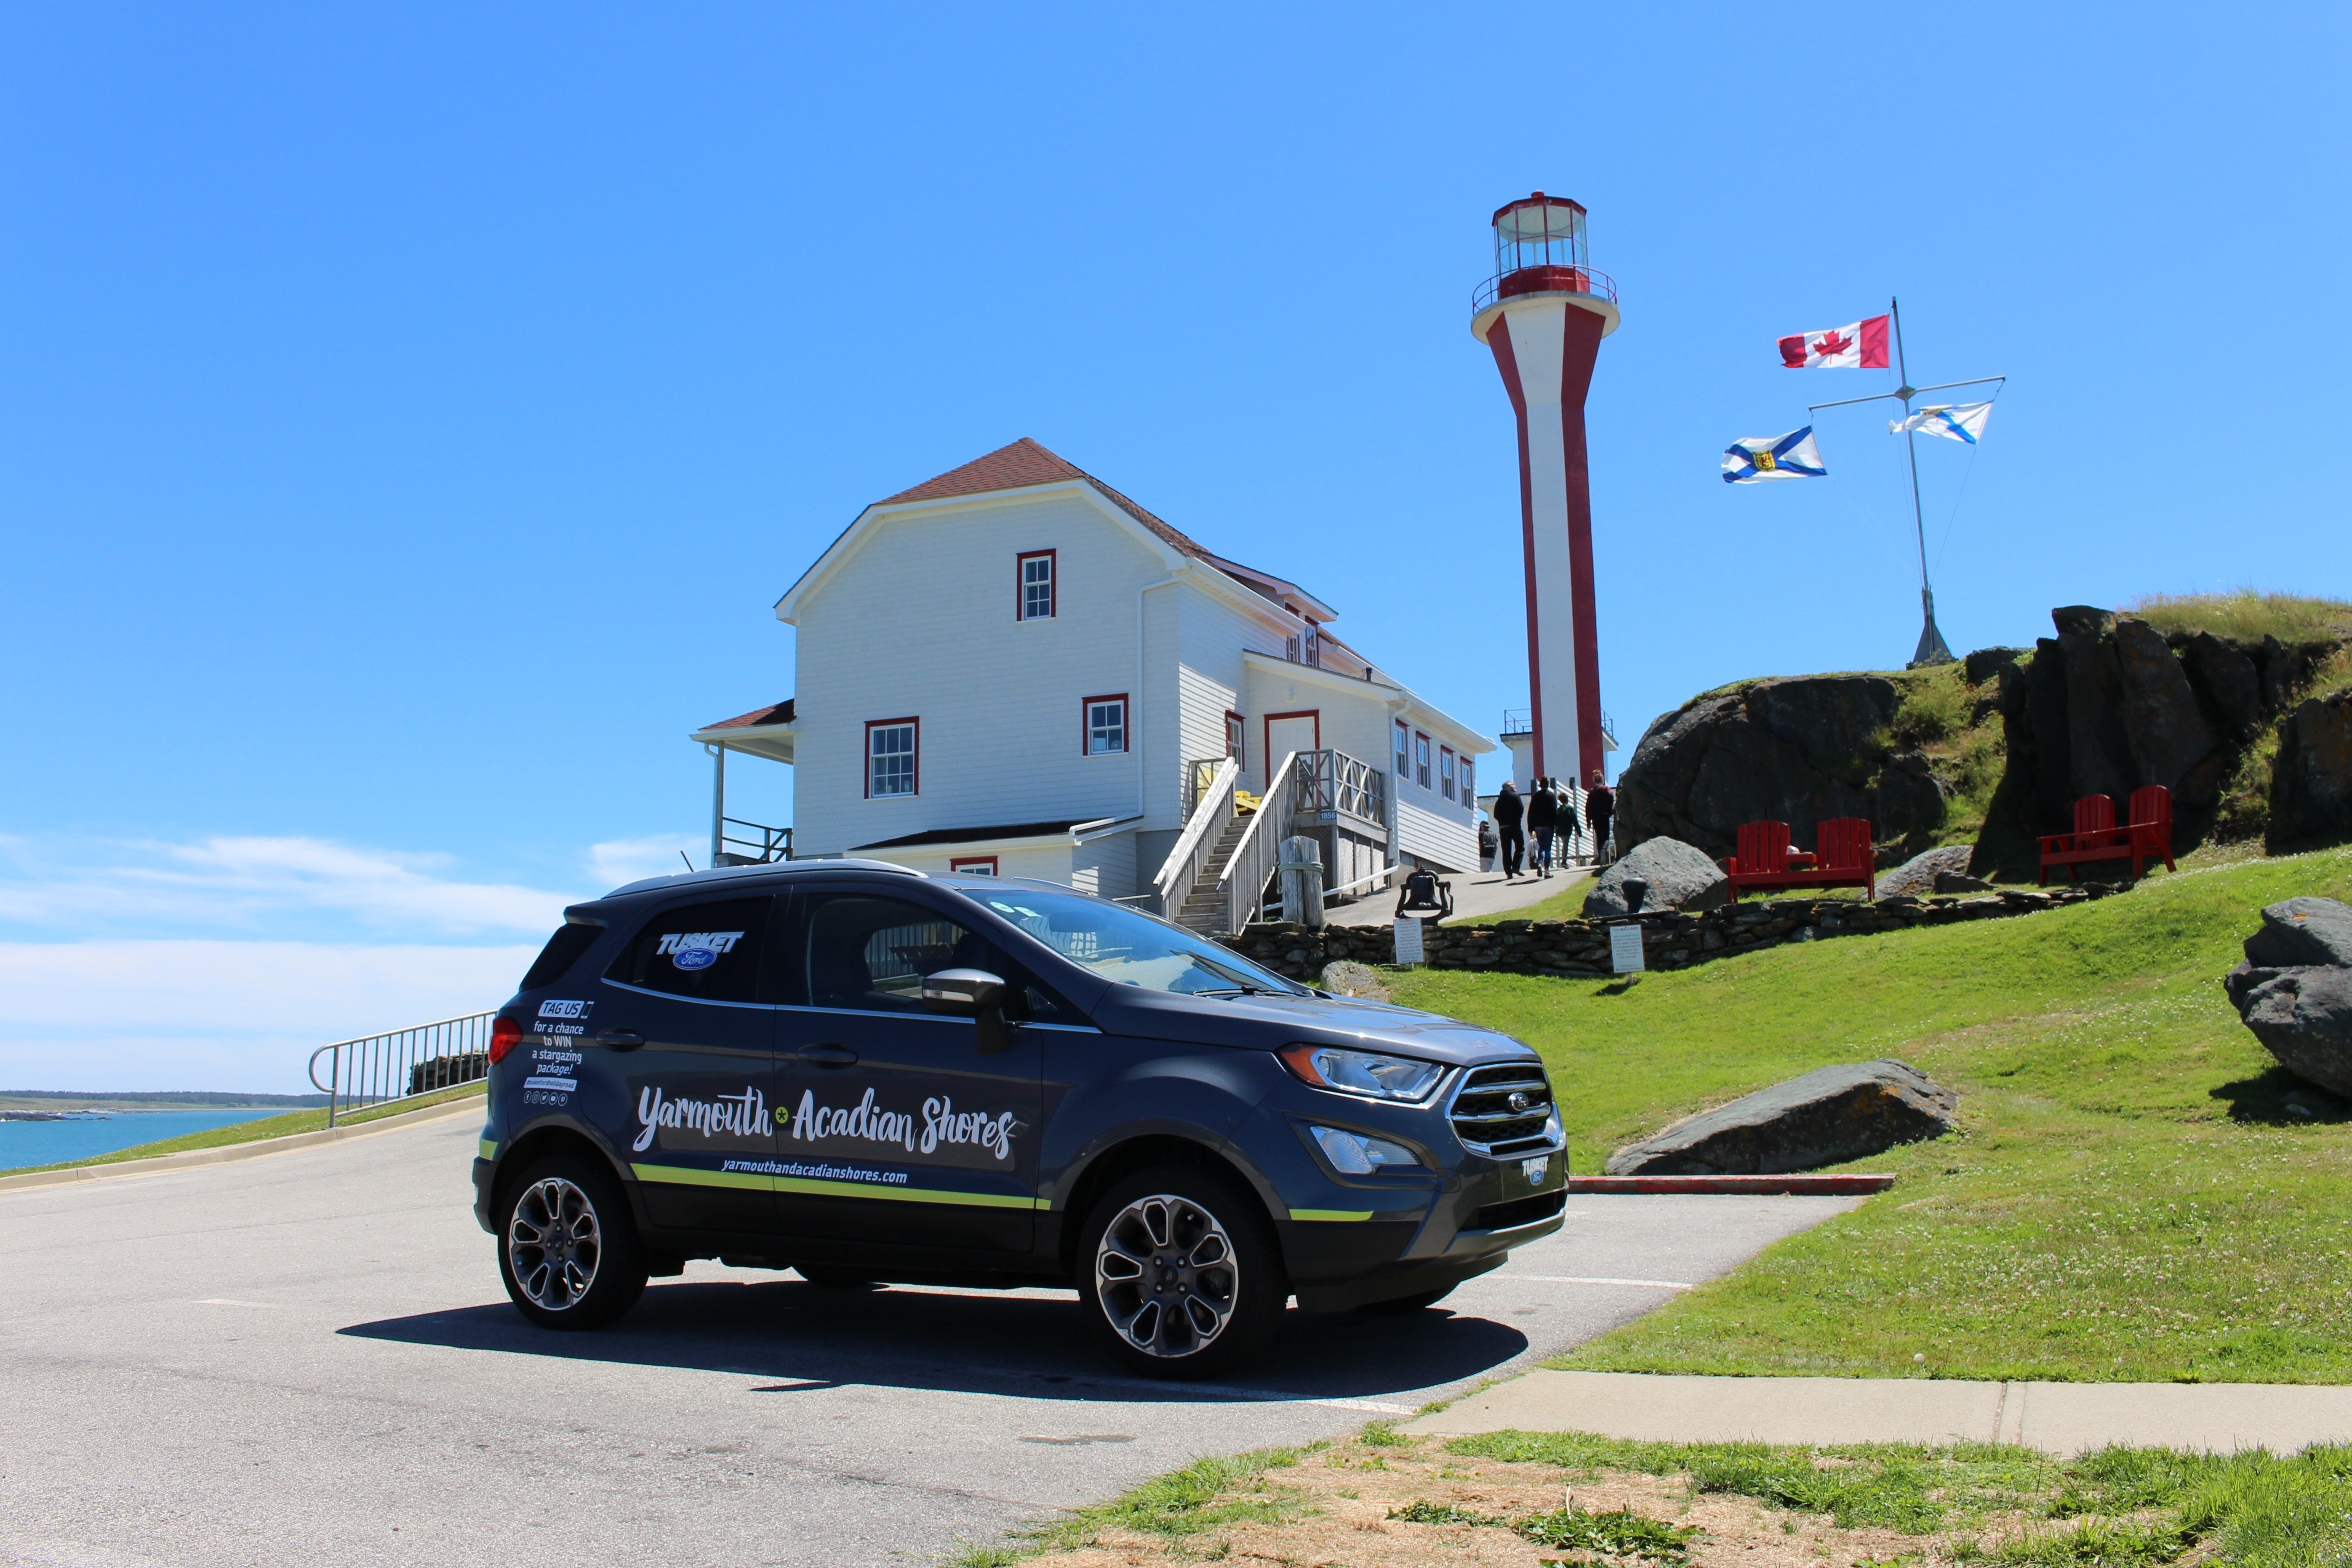 The Yarmouth & Acadian Shores Tourism Association's summer cruiser at the Cape Forchu Lightstation.